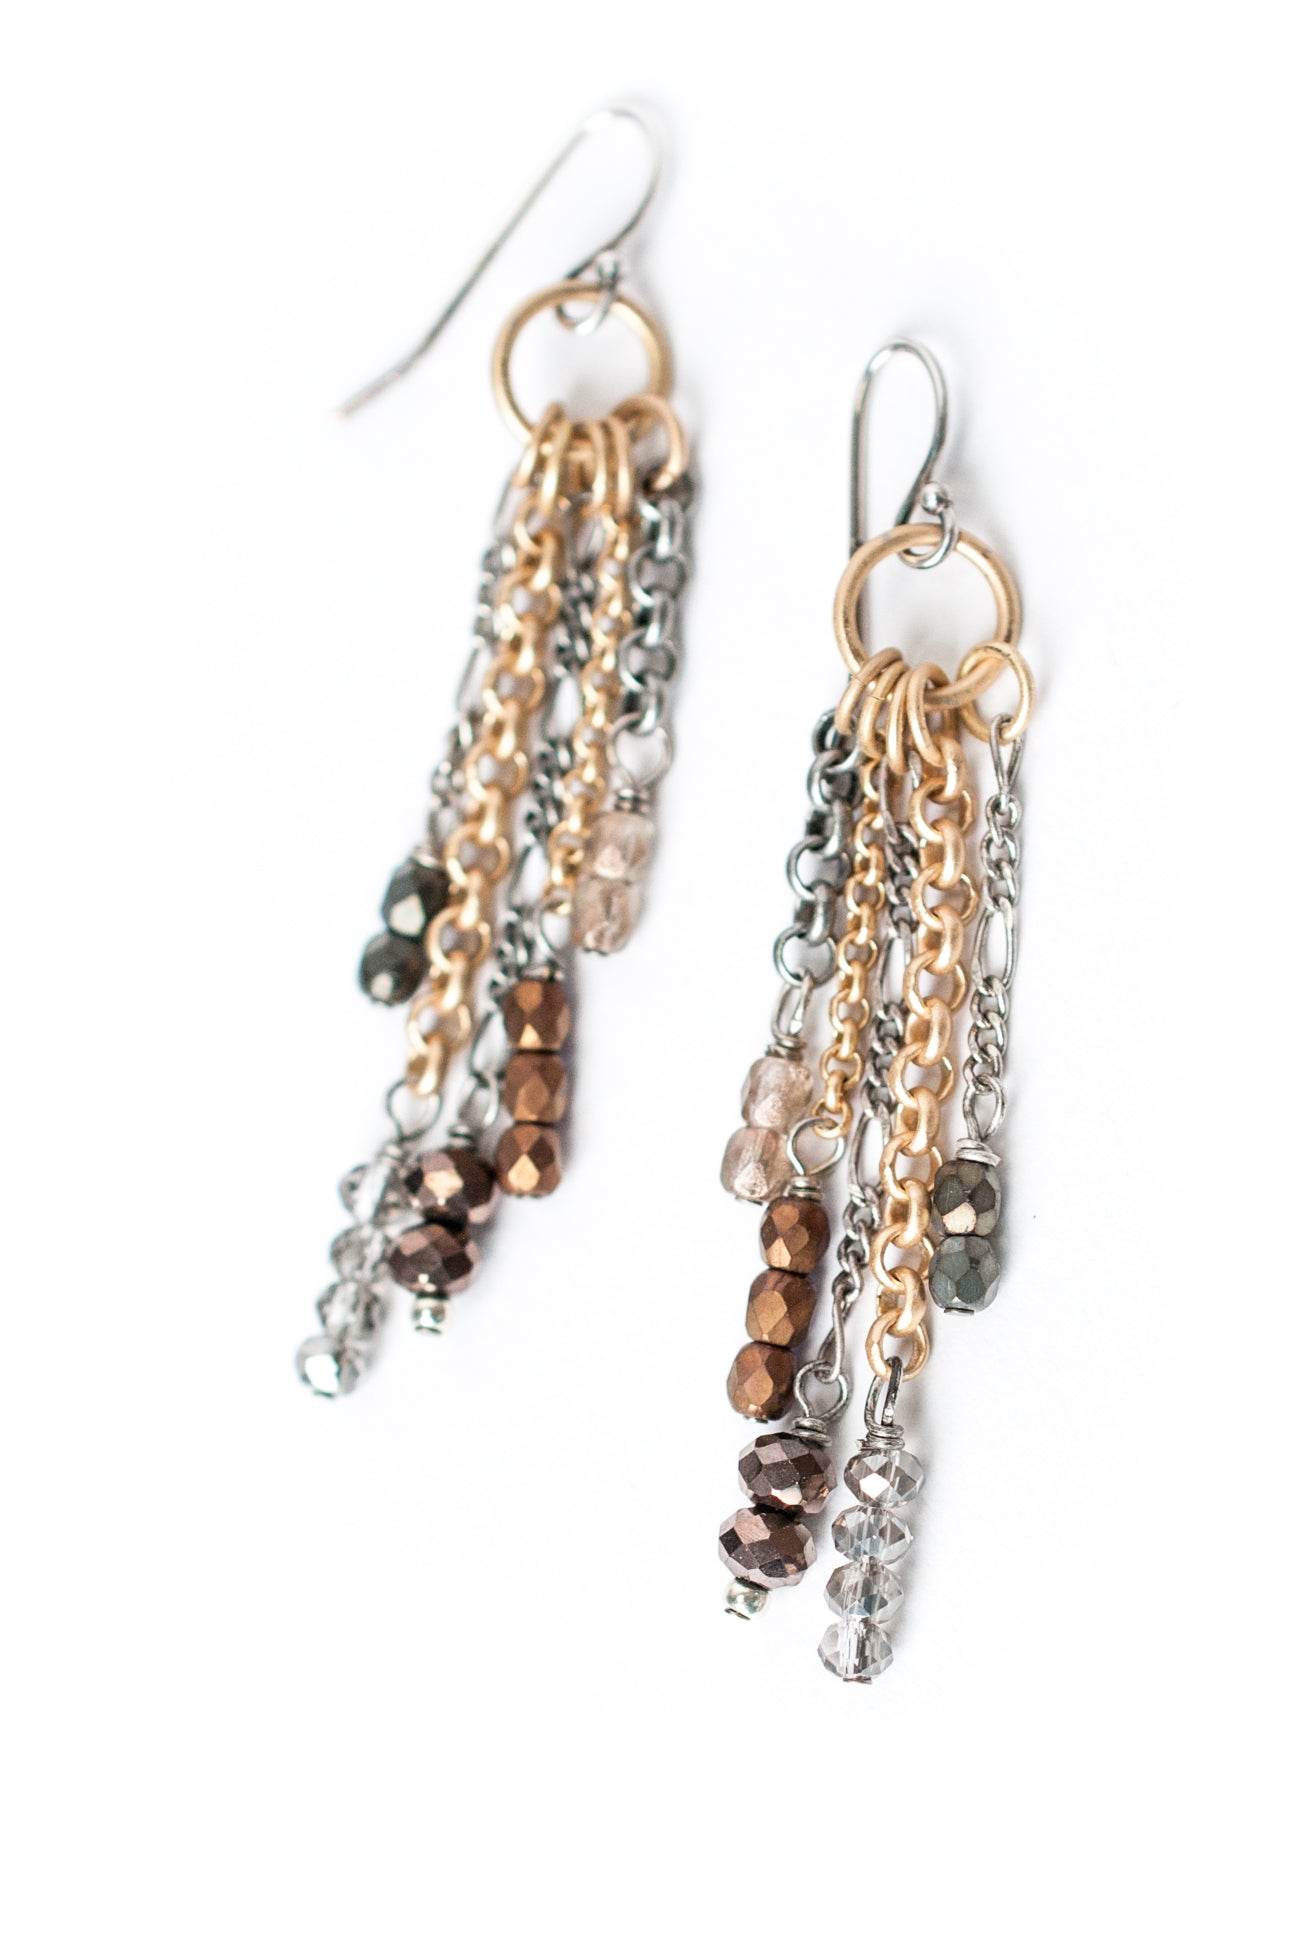 Silver & Gold Mixed Metal & Gemstone Tassel Earrings